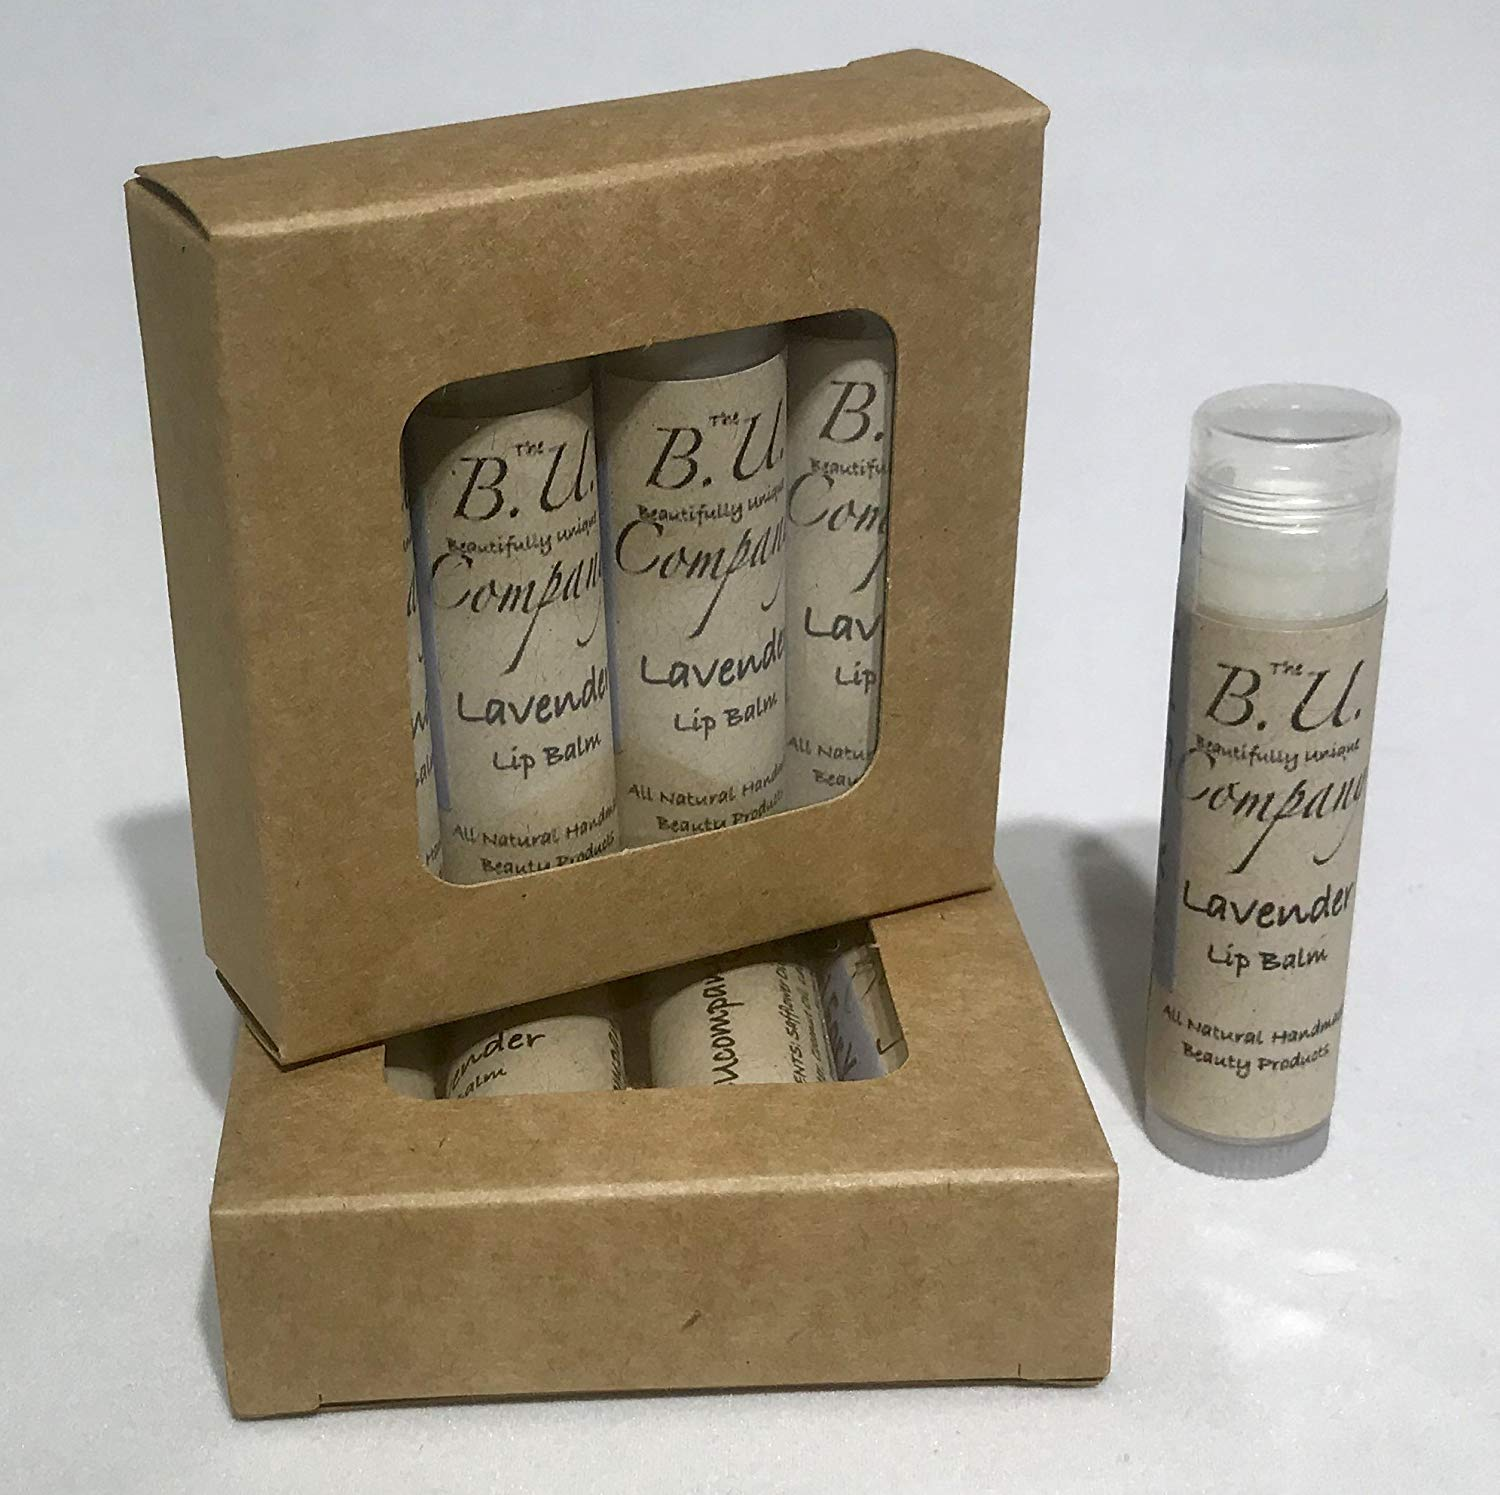 All Natural Lavender Lip Balm - All Natural Handmade - BU Company - 4 pack